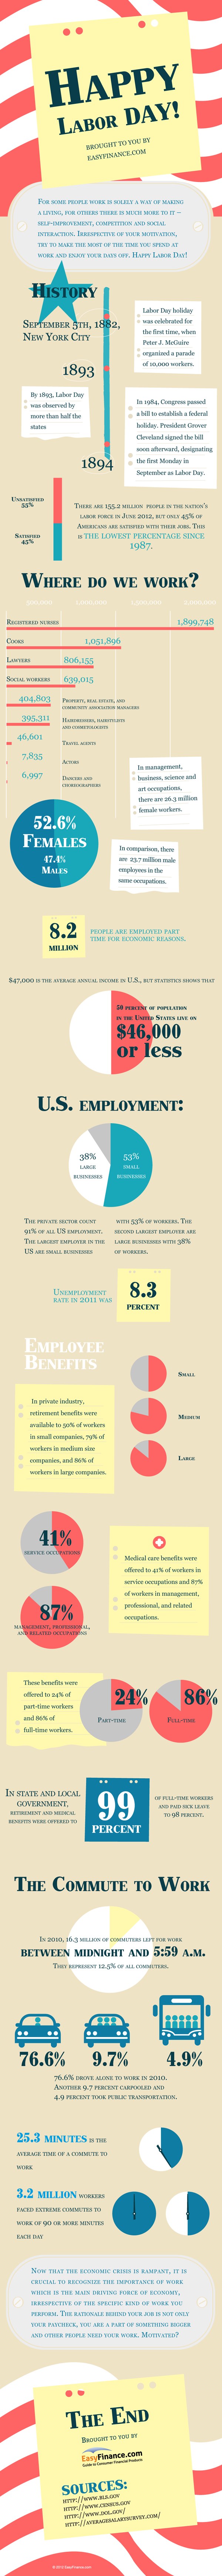 Great Kaw(asaki)!!: Happy Labor Day! [infographic] - Holy Kaw!